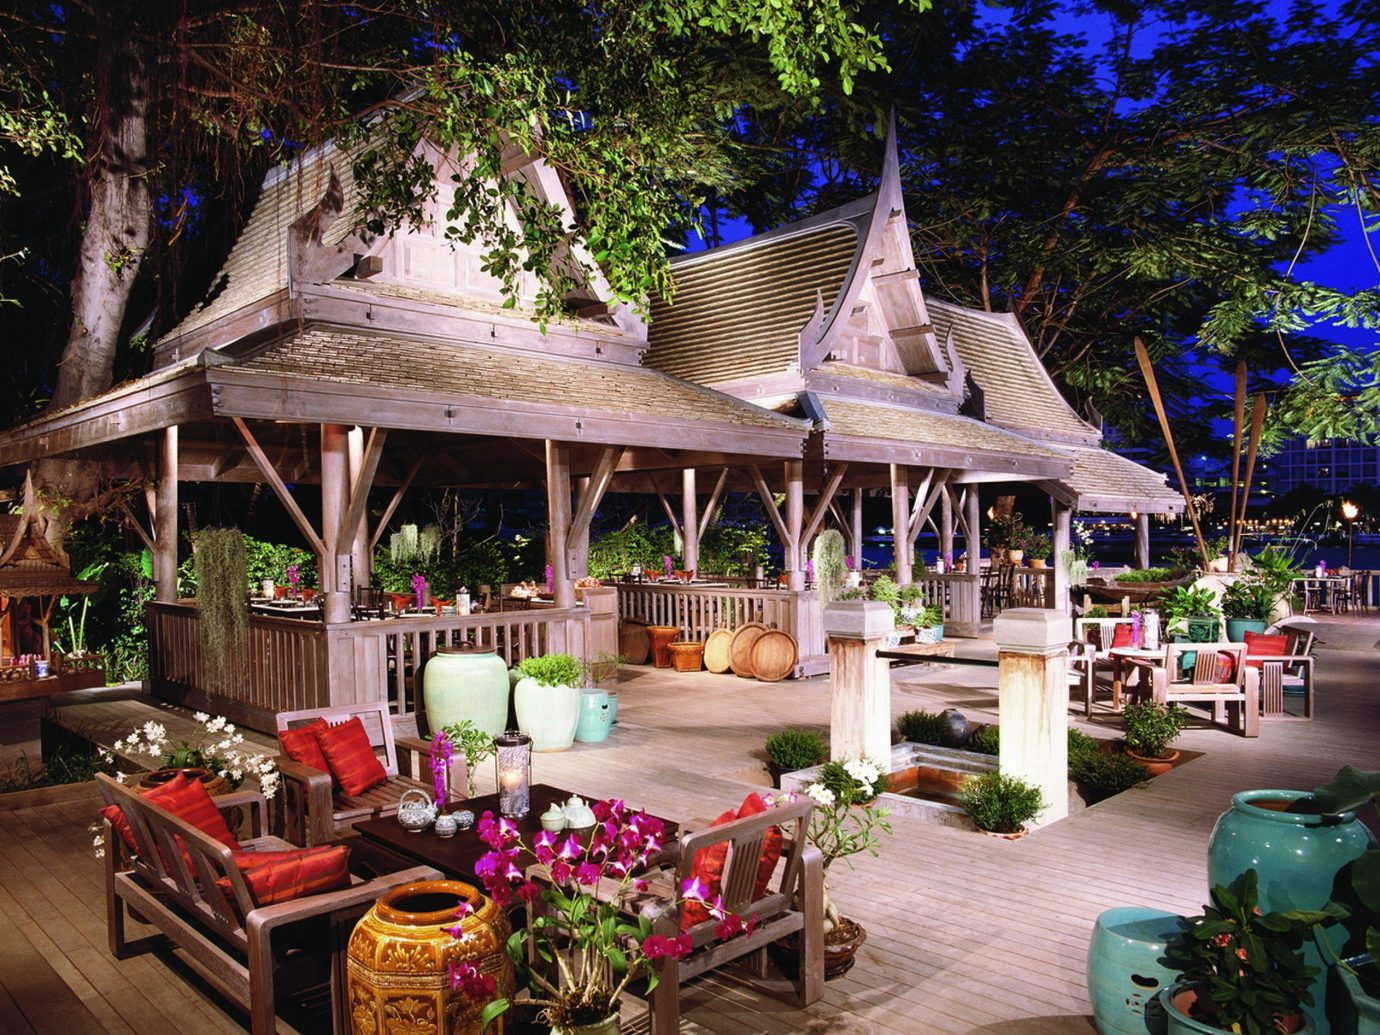 City Drink Eat Hotels Lounge Outdoors Patio Romance Terrace tree outdoor building Resort restaurant estate flower outdoor structure furniture decorated Garden several